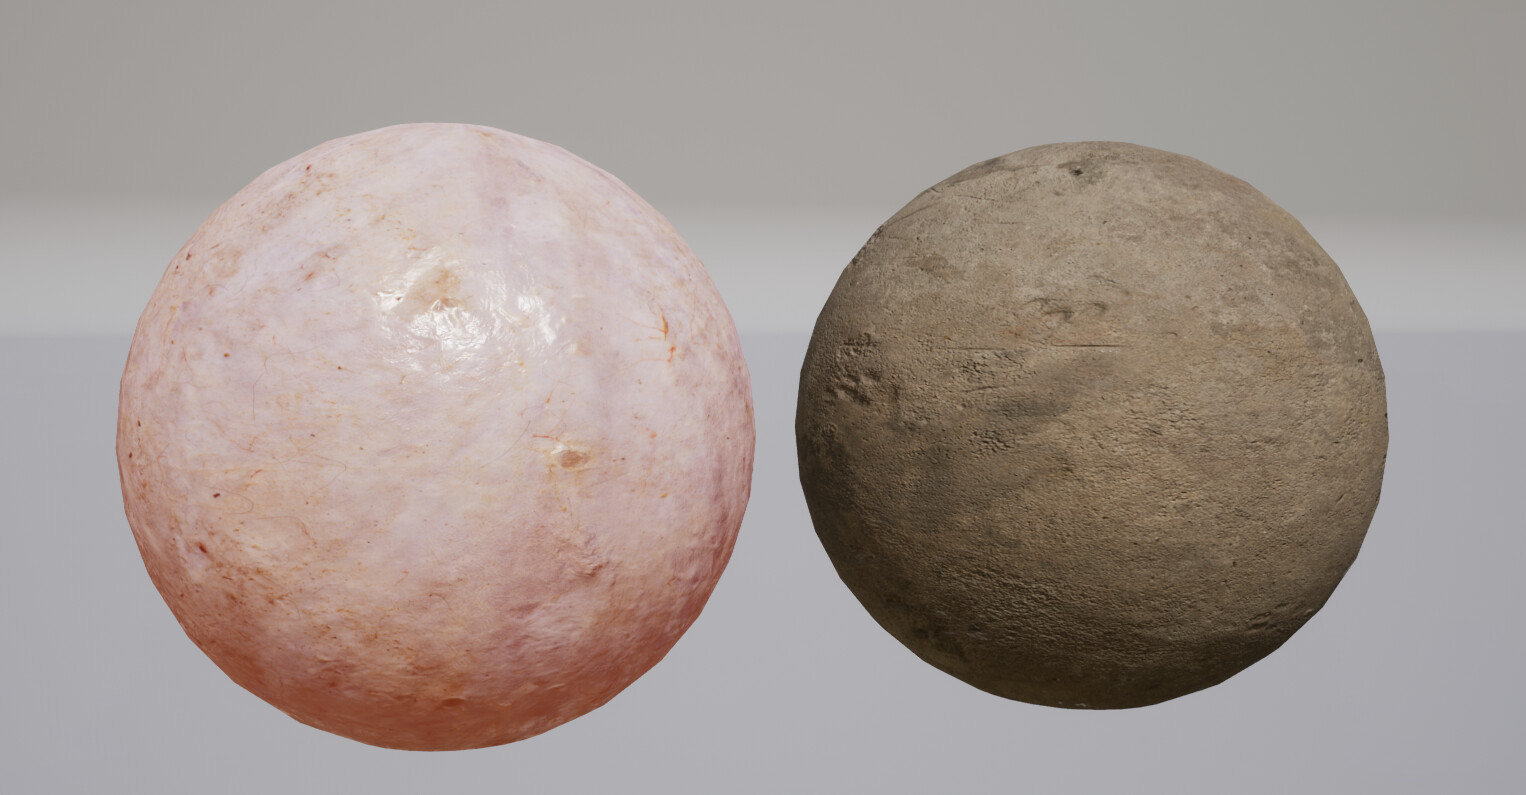 Materials used from Quixel Megascans